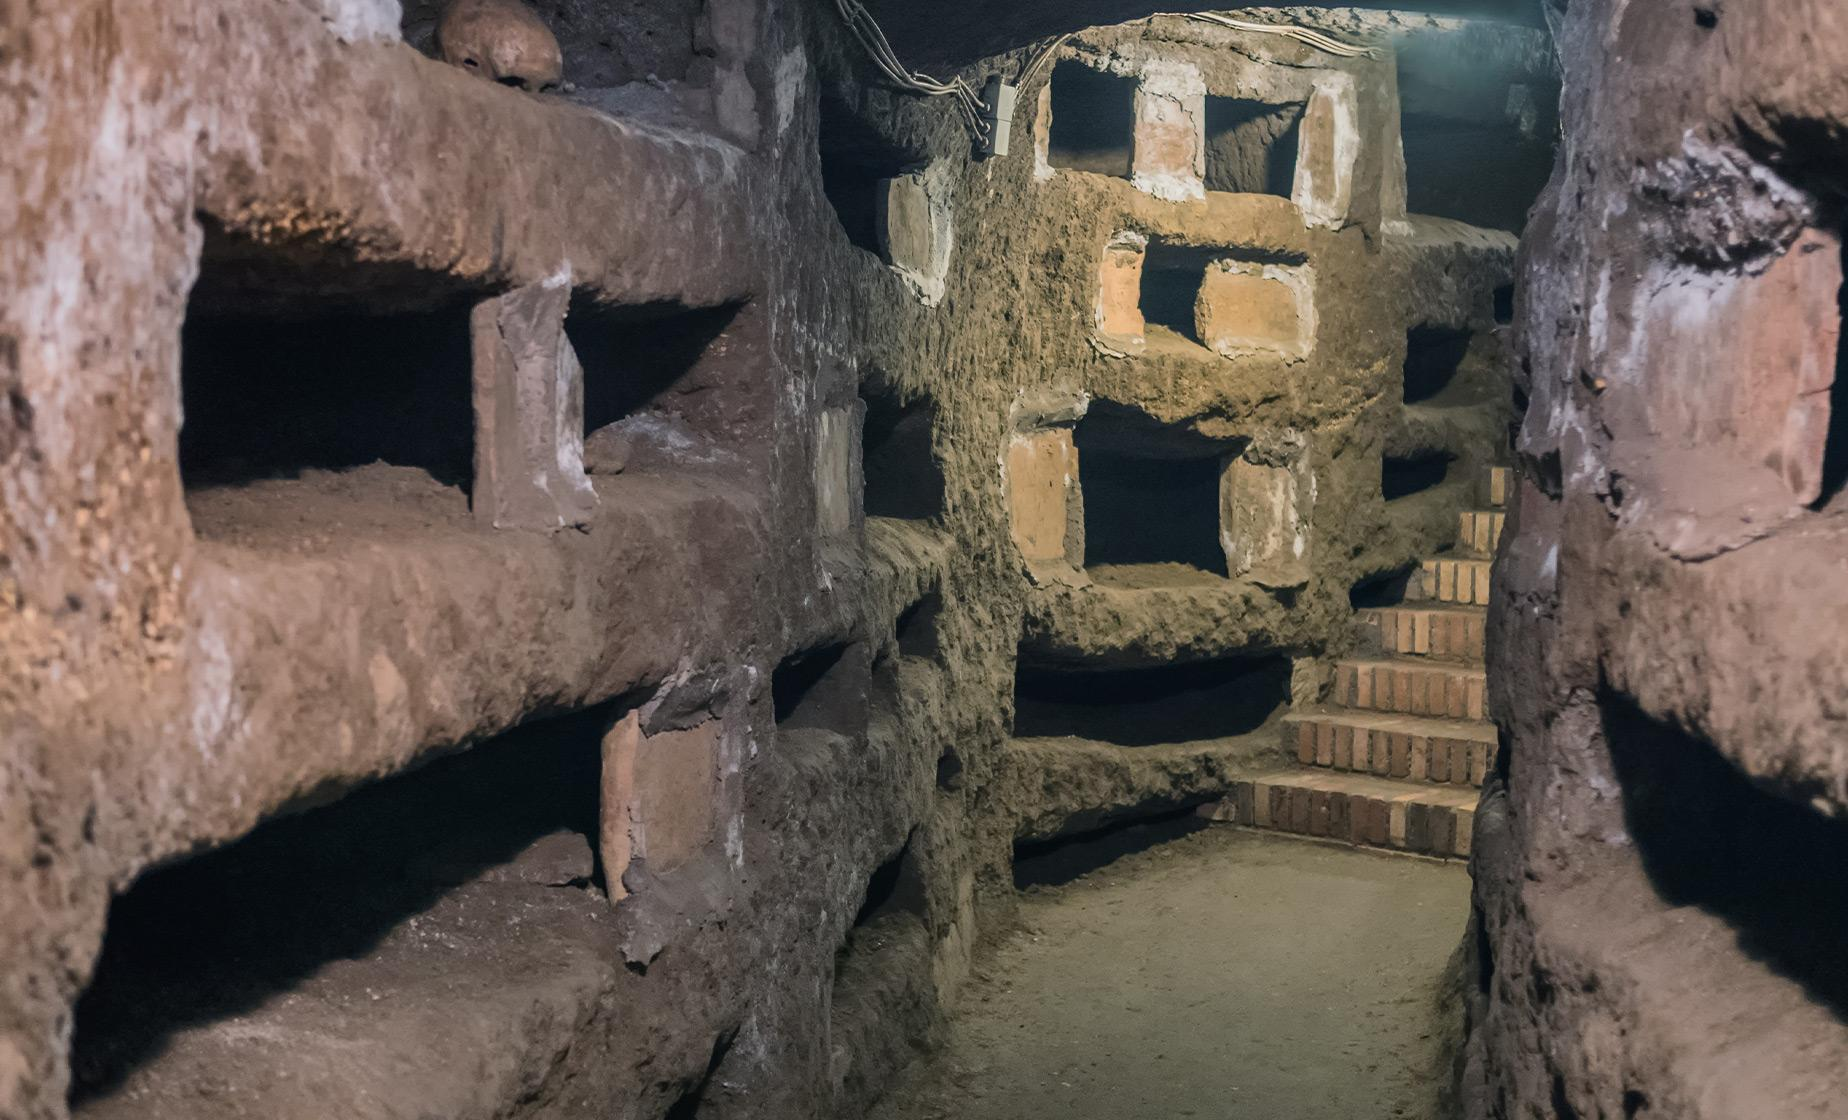 Ancient Roman Burial Catacombs & Underground Rome Excursion